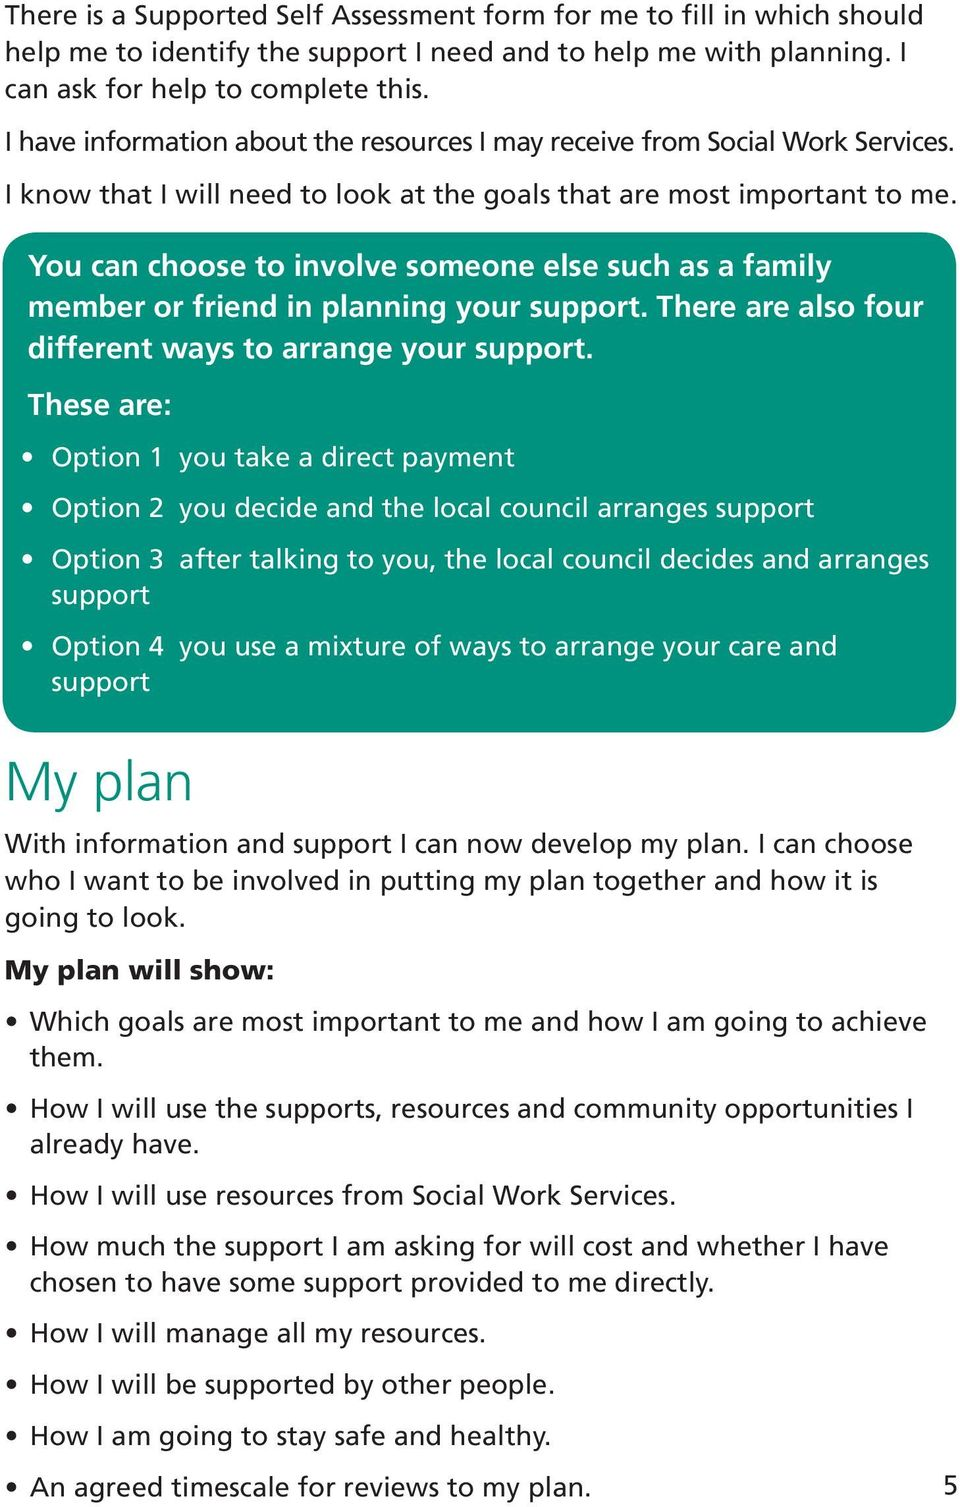 You can choose to involve someone else such as a family member or friend in planning your support. There are also four different ways to arrange your support.